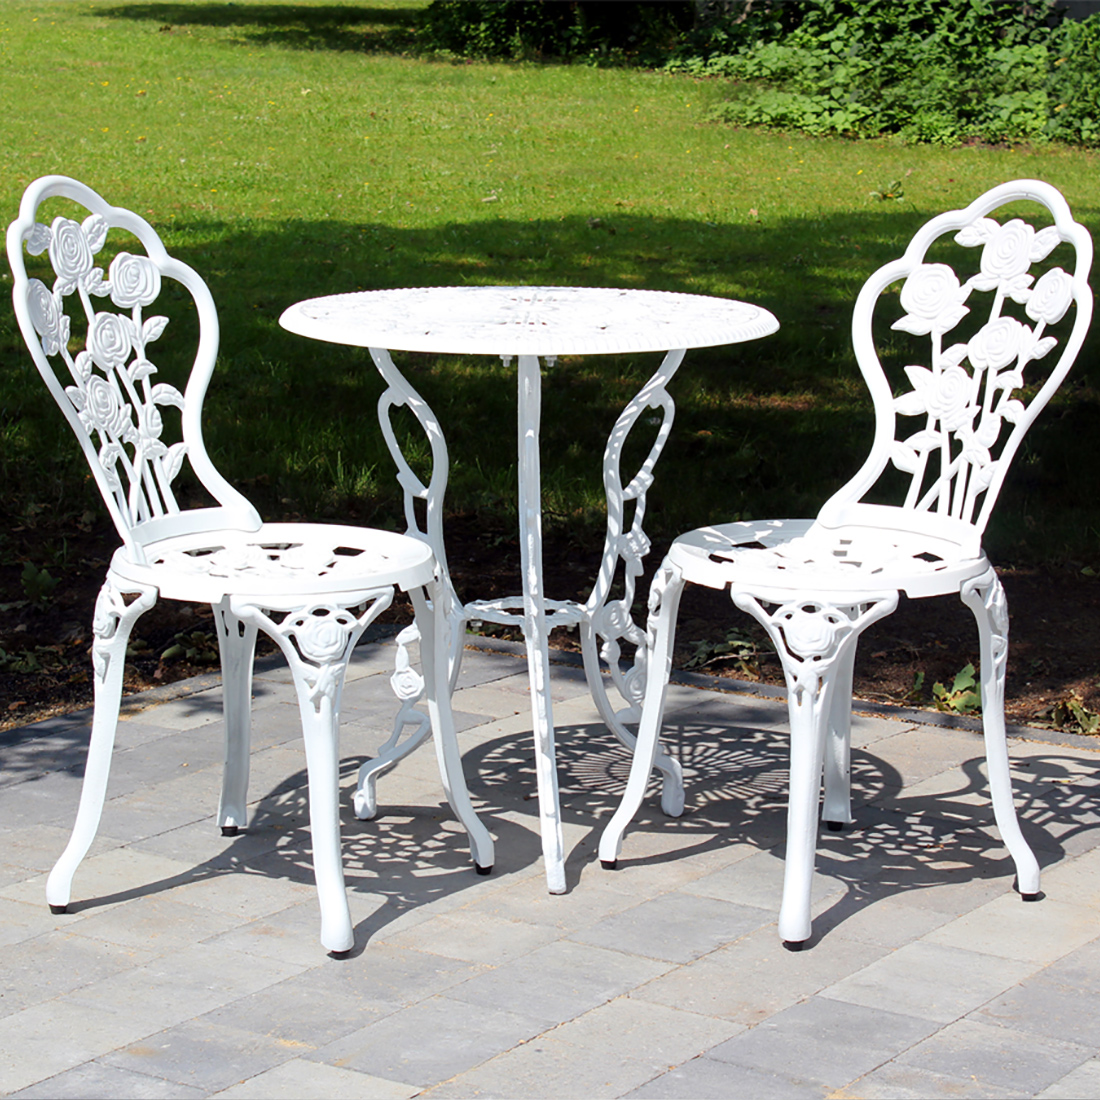 tisch 2 st hle bank antik weiss gr n bistro set garten. Black Bedroom Furniture Sets. Home Design Ideas